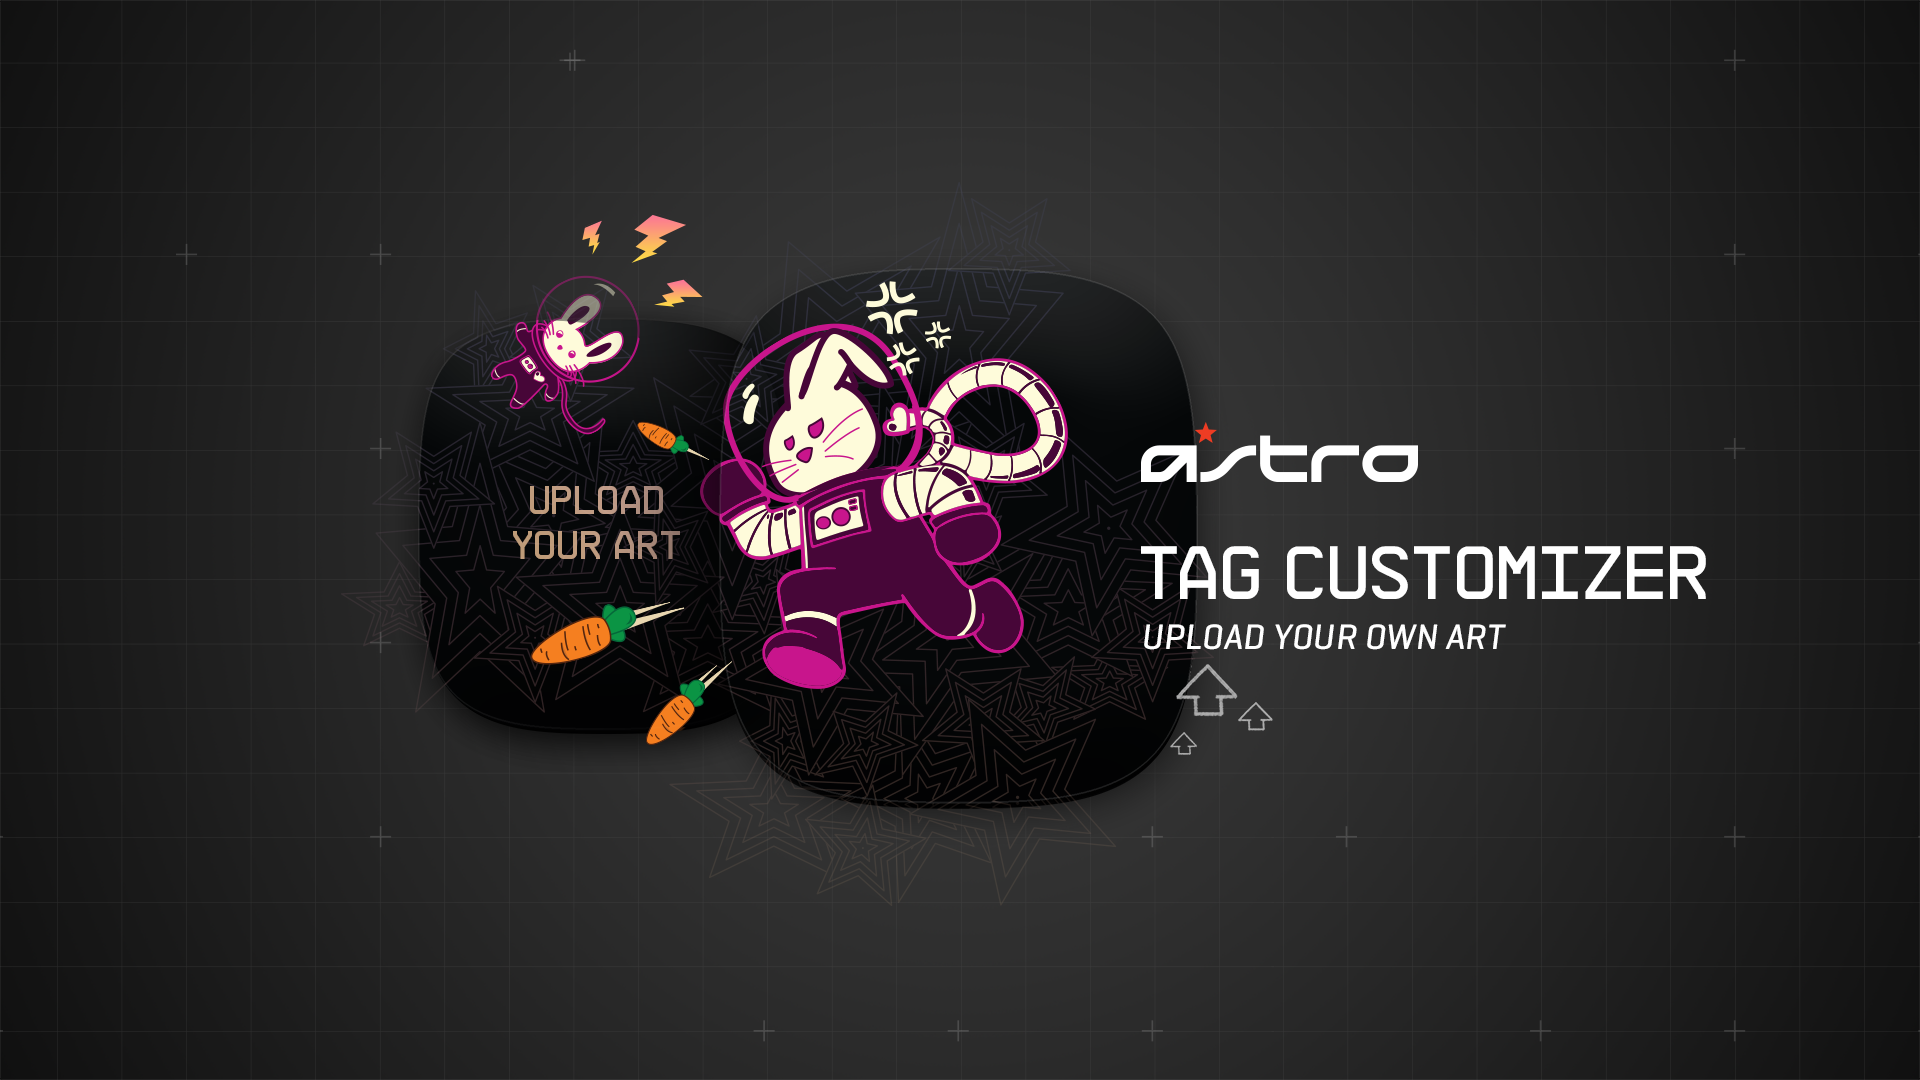 ASTRO Custom Speaker Tag Customizer Guide